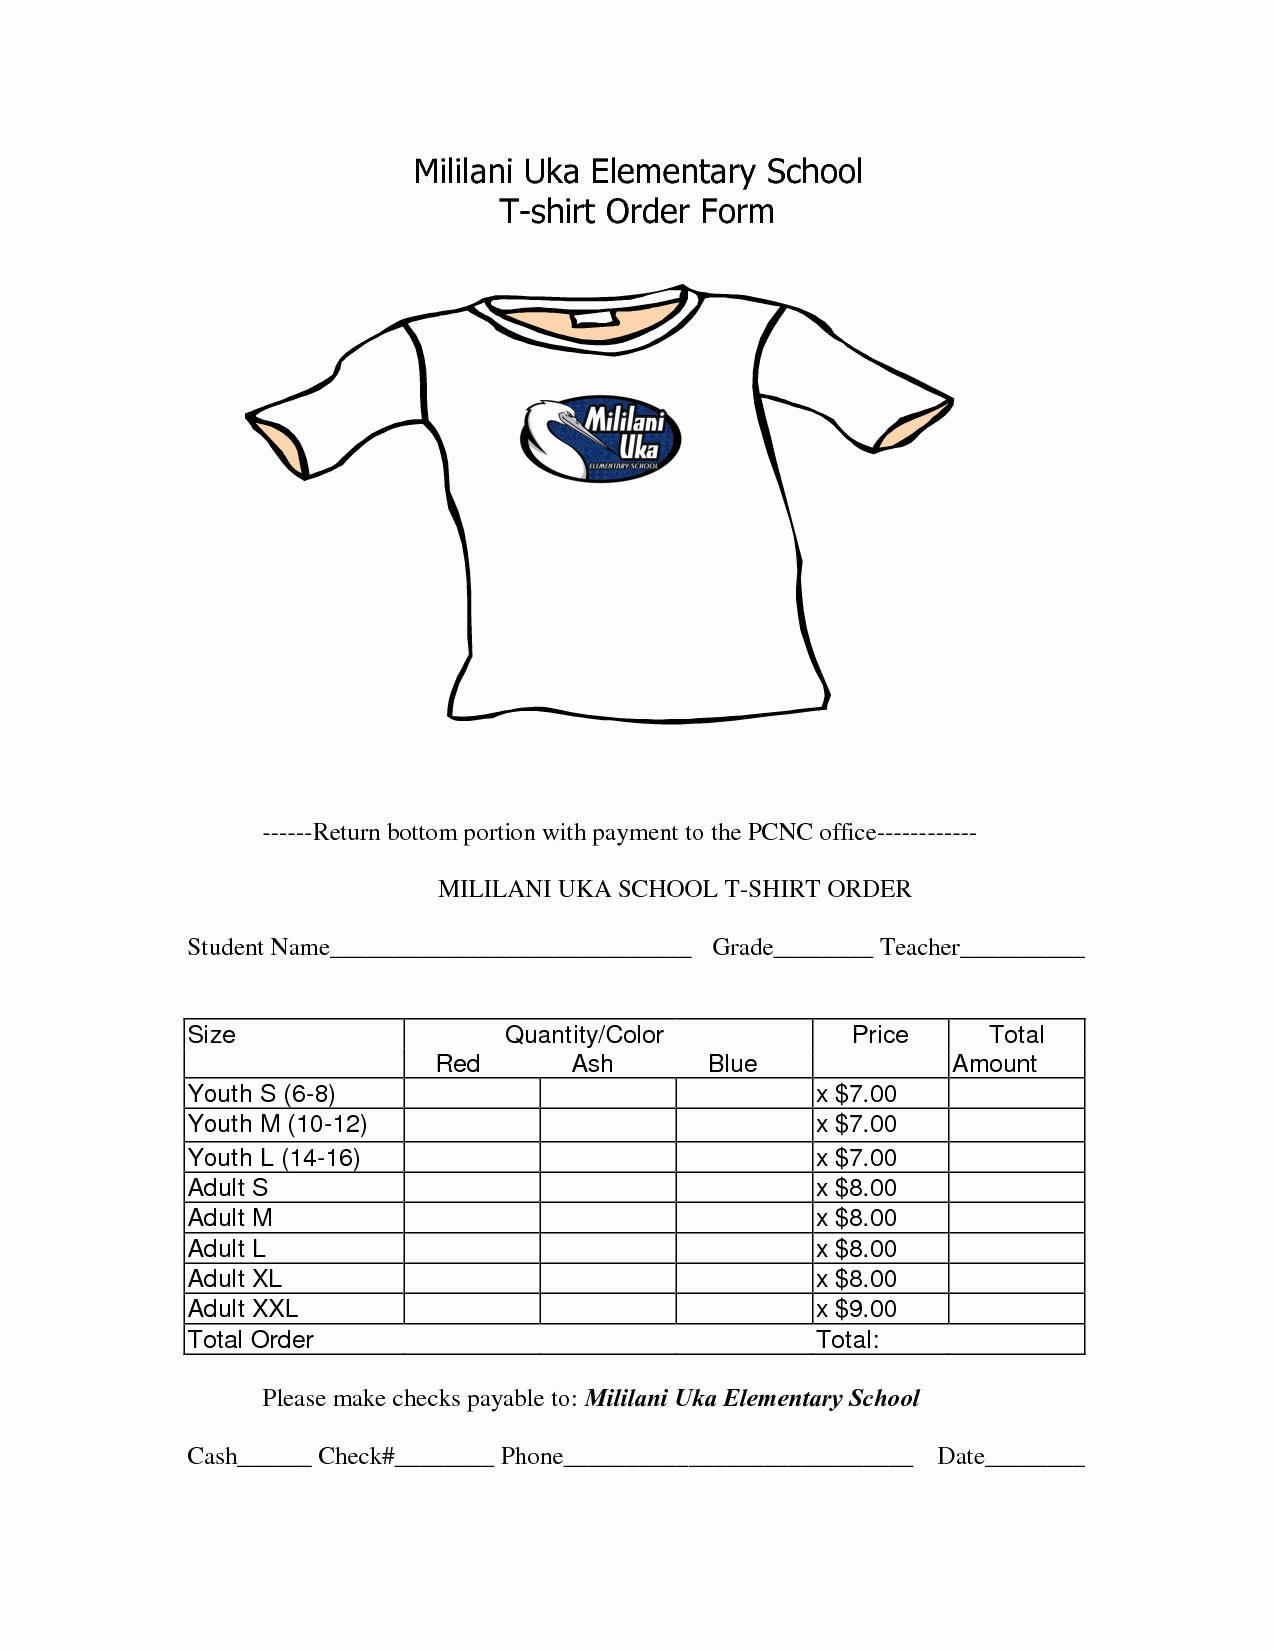 School Photo order form Template Fresh School T Shirt order form Template Clothes